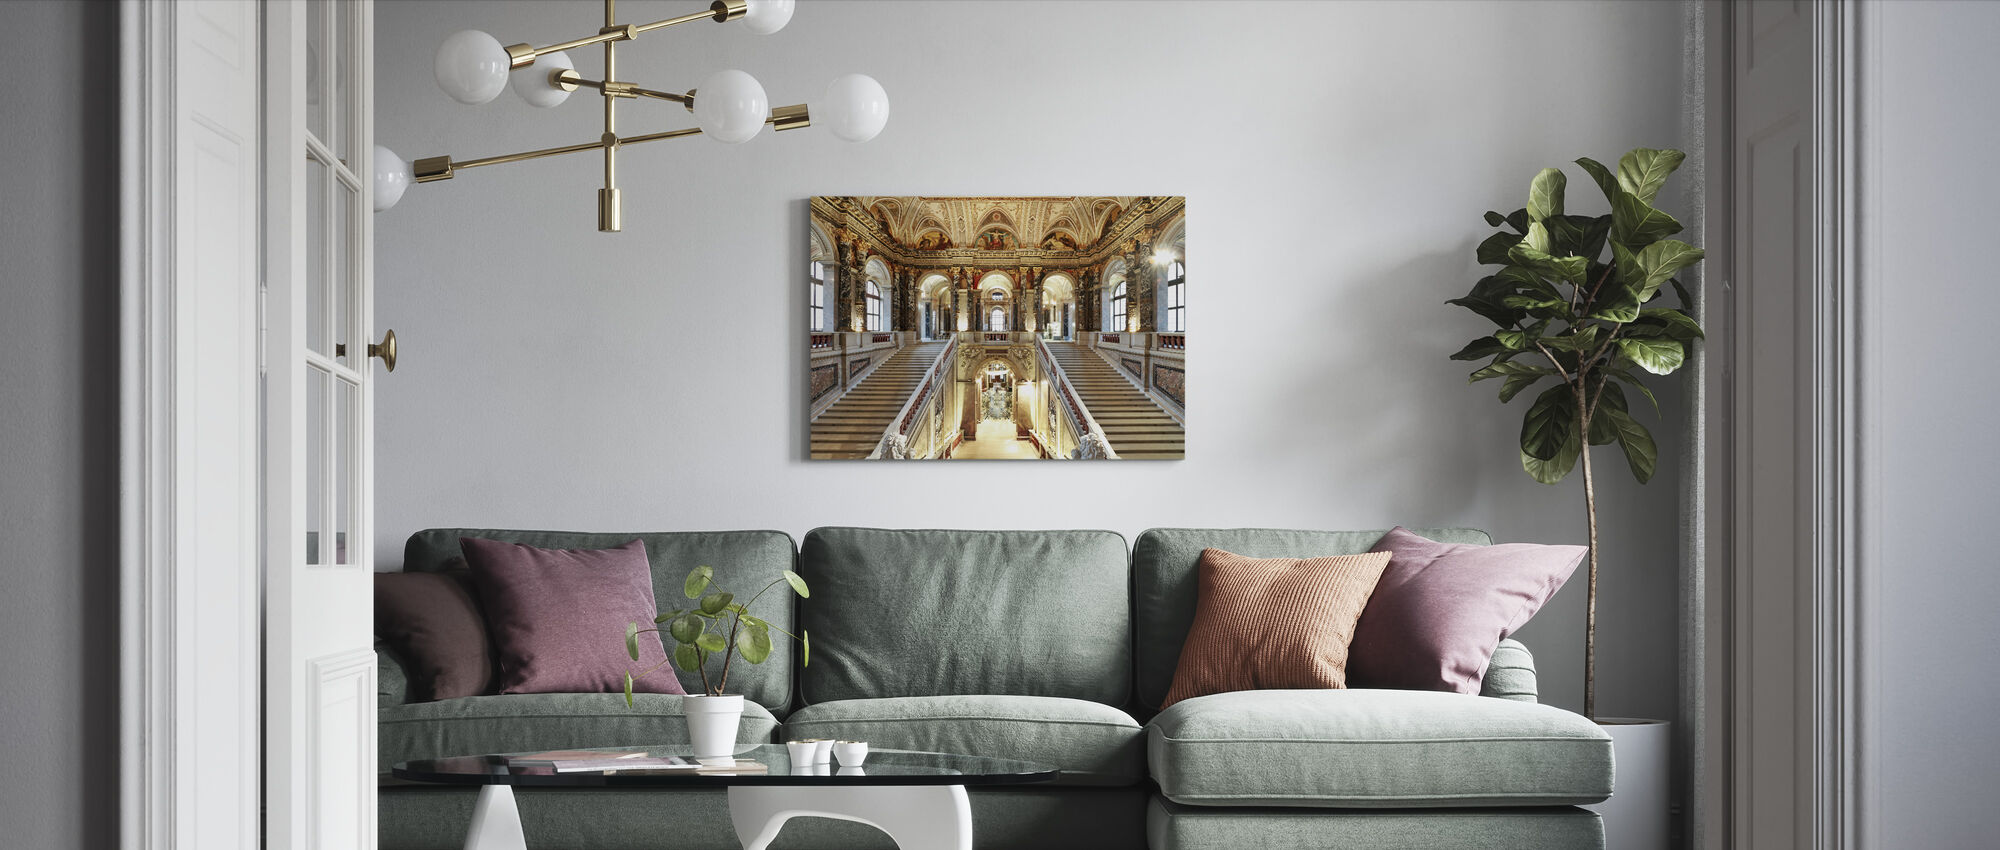 Palace Staircase - Canvas print - Living Room